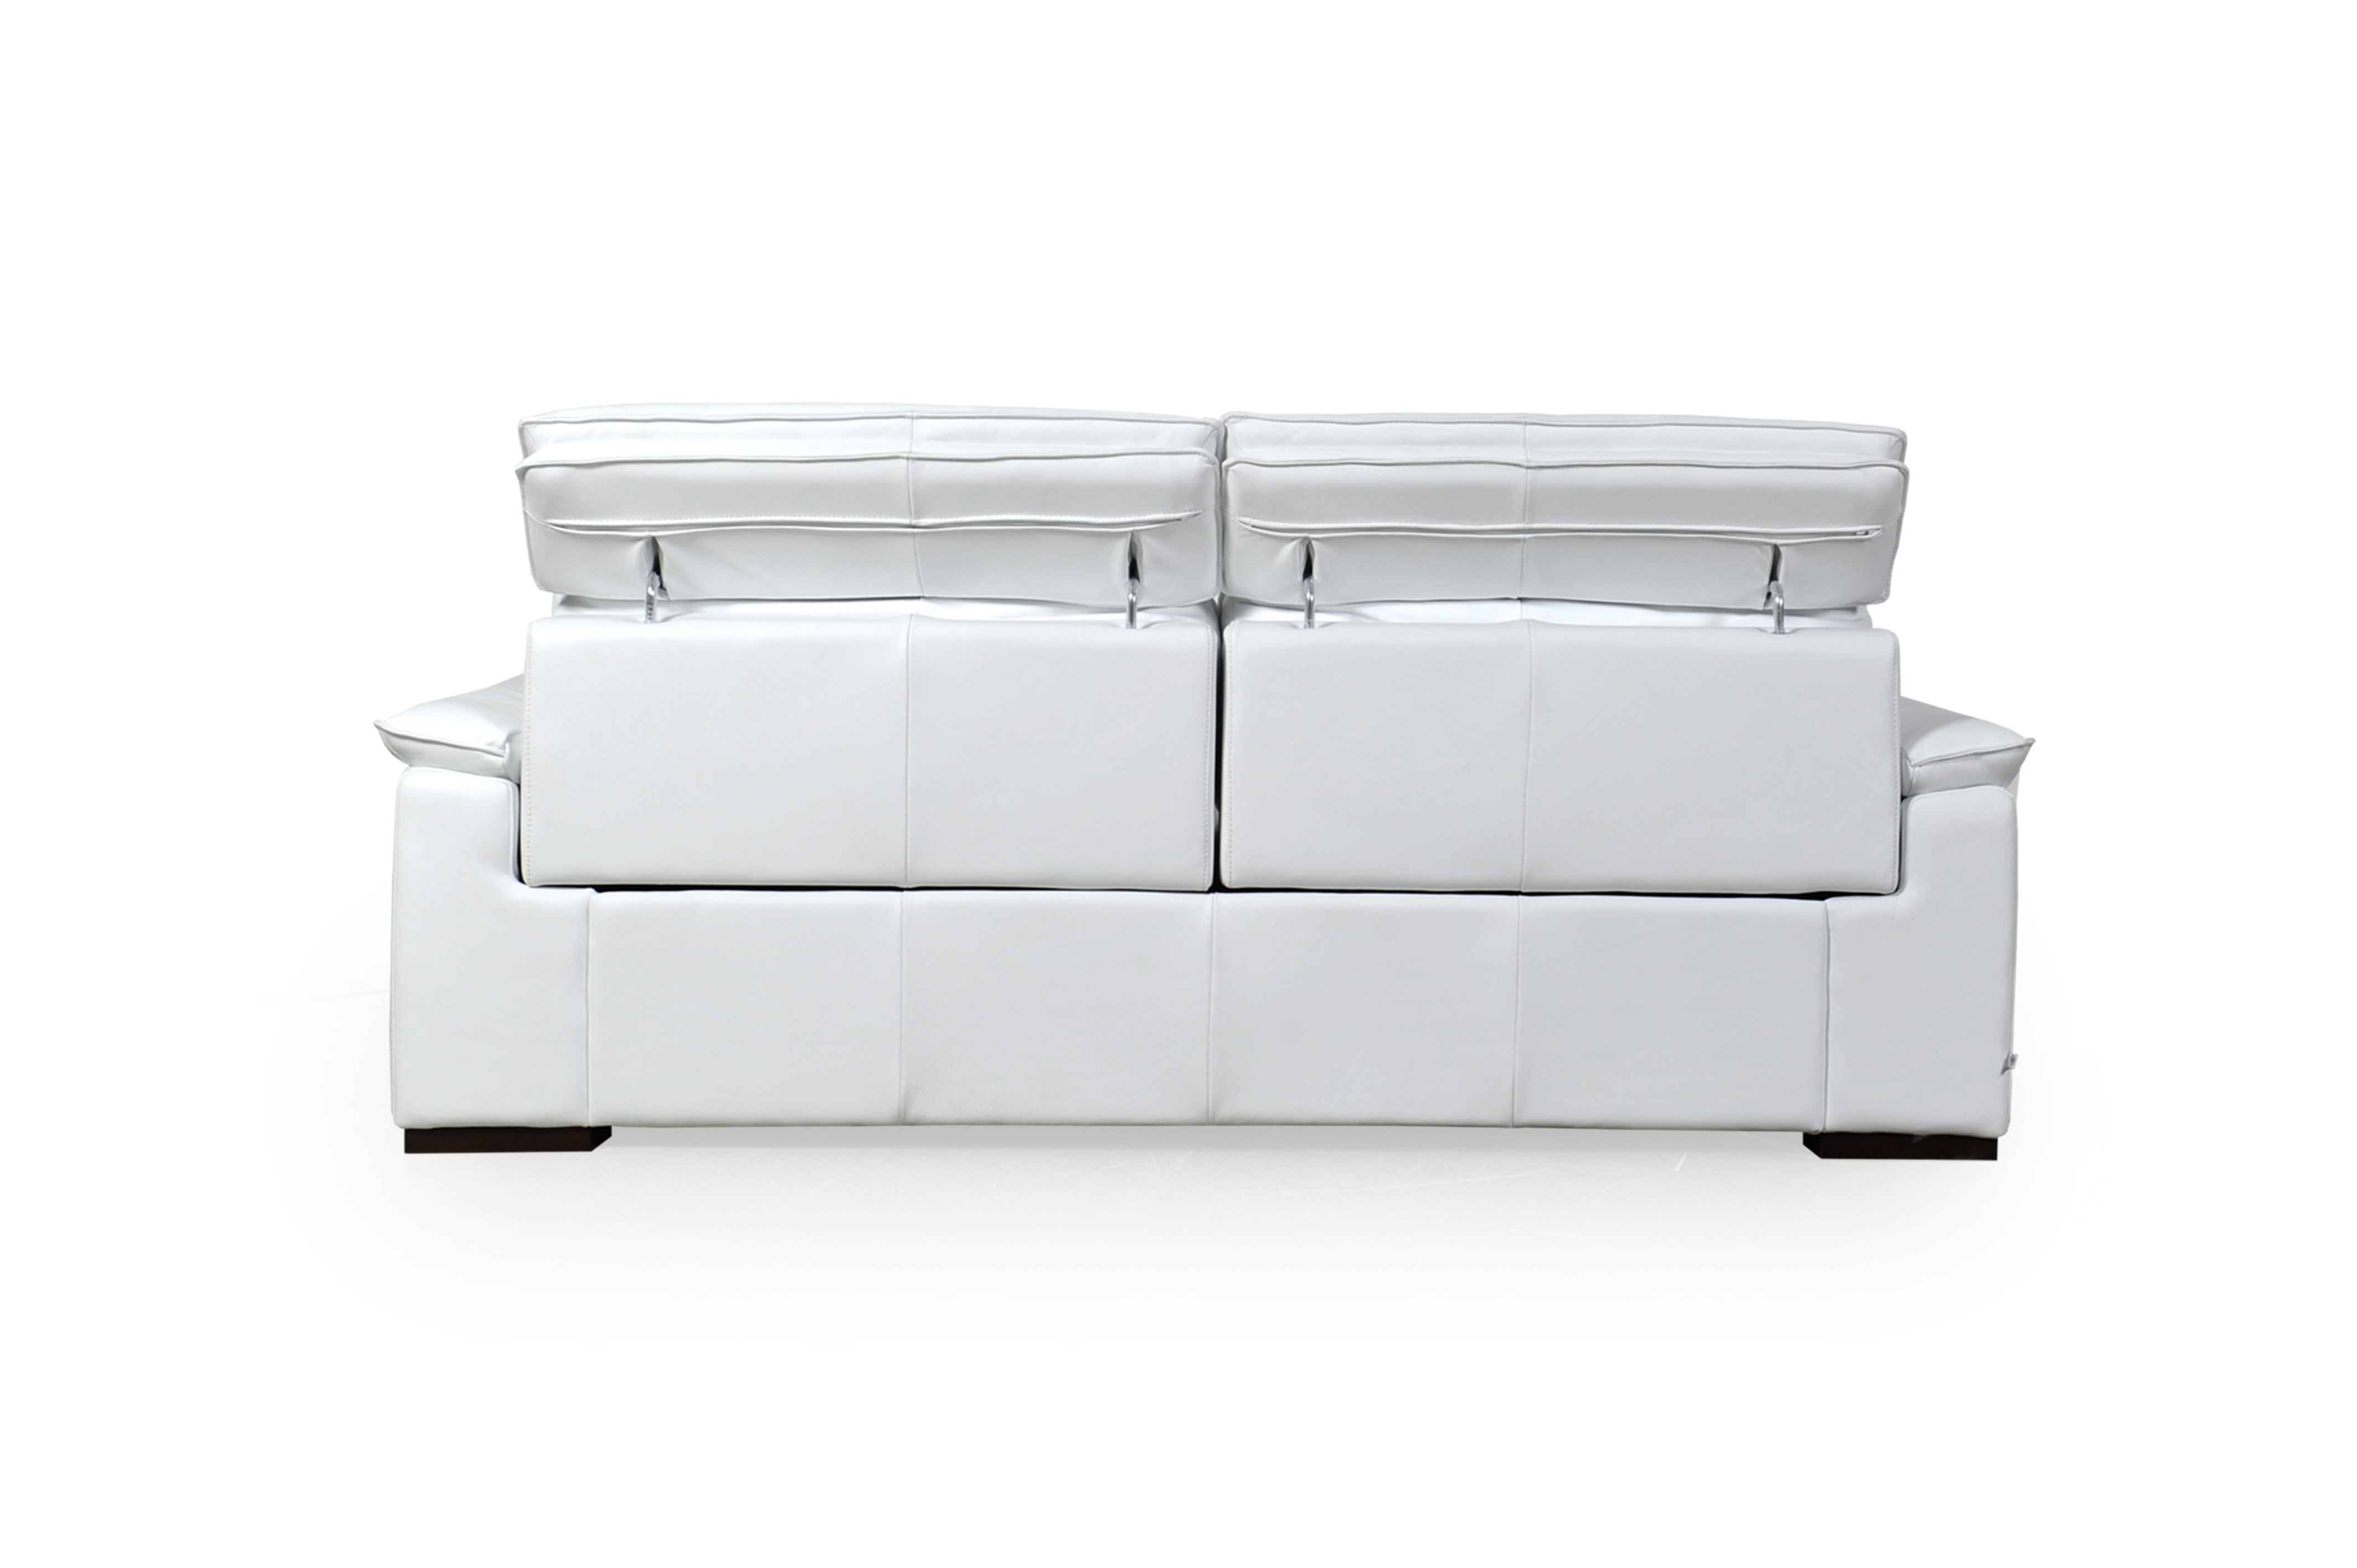 Outstanding Yorbita Motorized Sofa Pure White 56837B1641 Sofas And Gmtry Best Dining Table And Chair Ideas Images Gmtryco